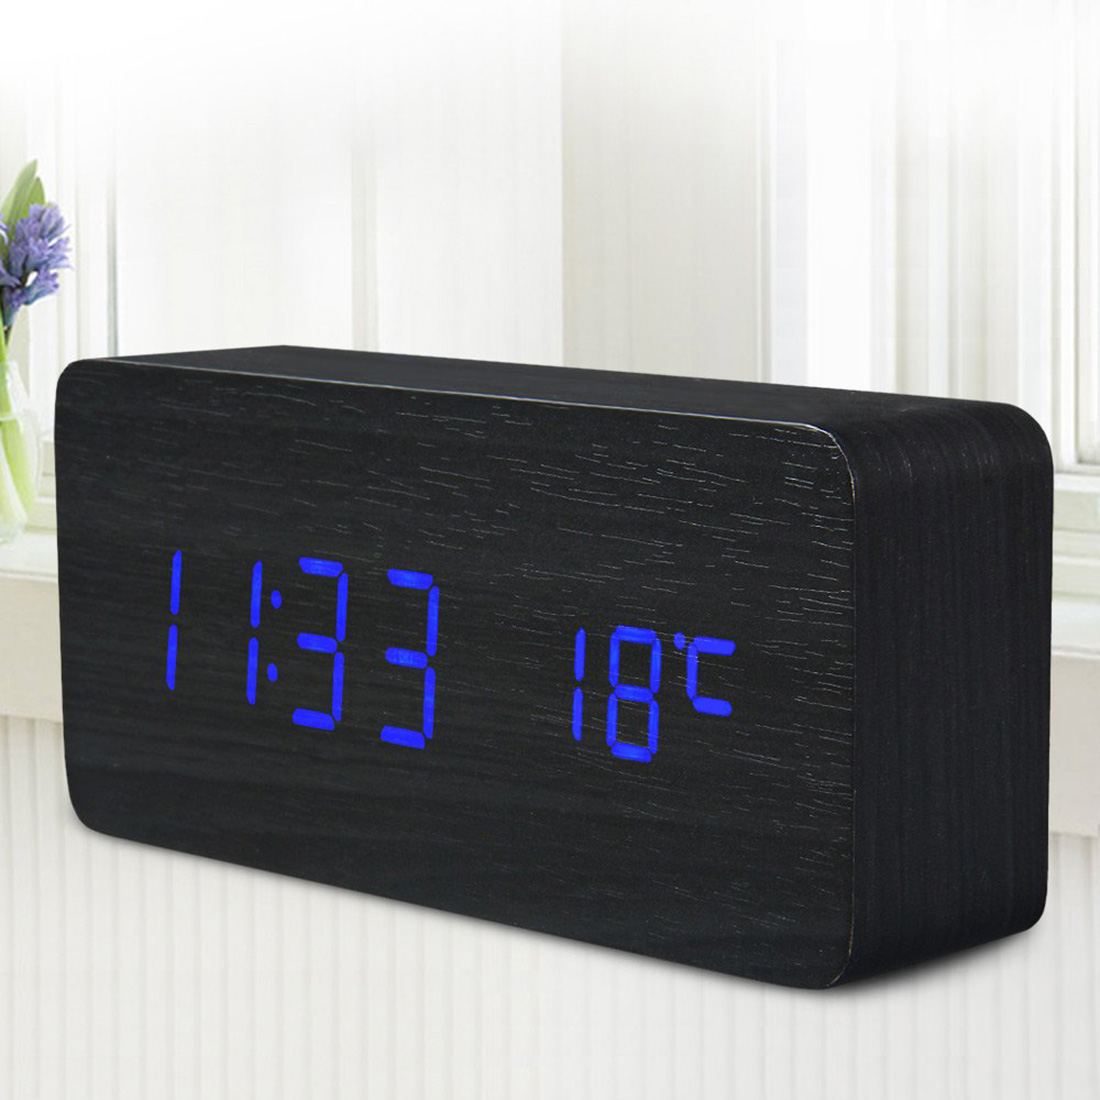 Fashion 2016 Sound Control LED Wooden Alarm Clock Digital Time Temperature Week Calendar Display for Home(China (Mainland))